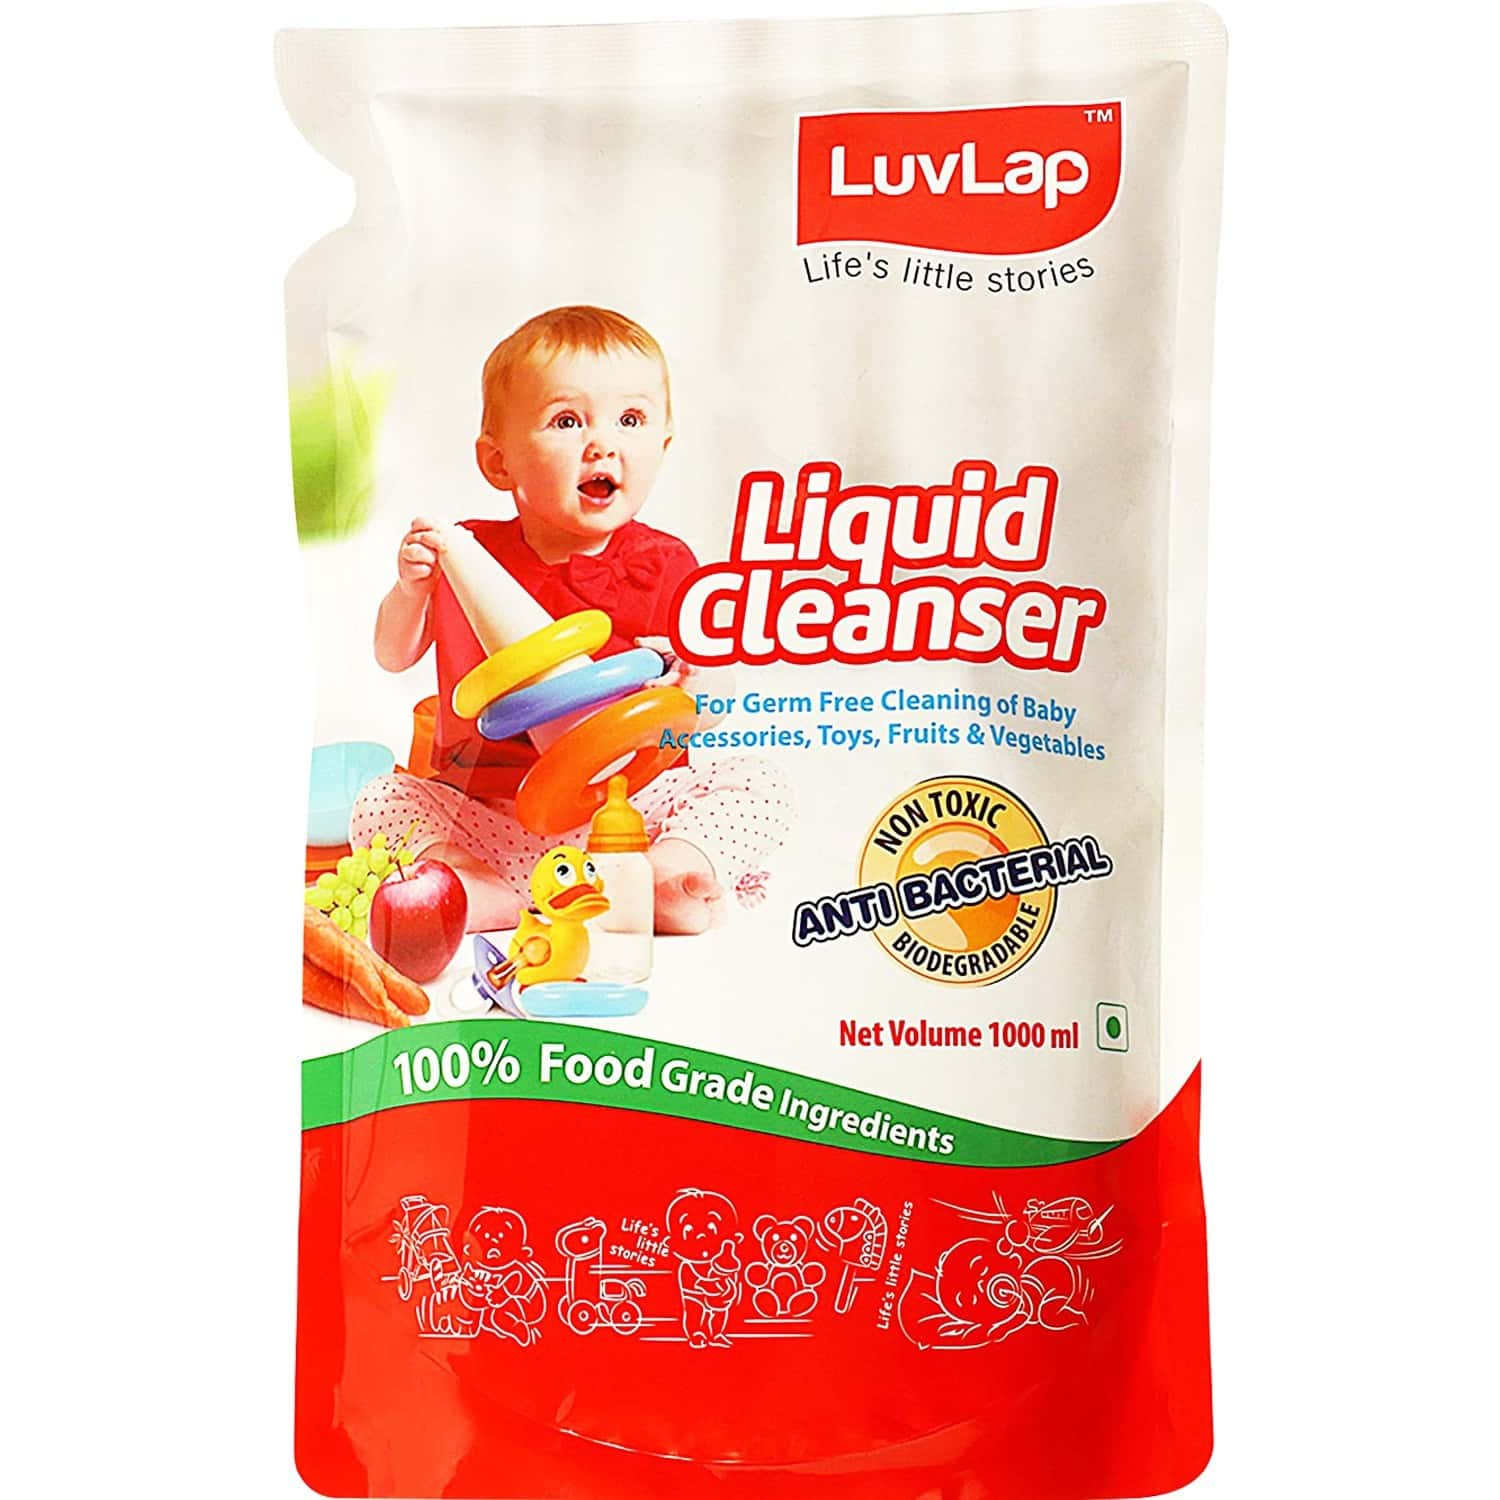 Luvlap Liquid Cleanser Refill, Anti-bacterial, For Baby Bottles, Accessories And Vegetables, 1000ml